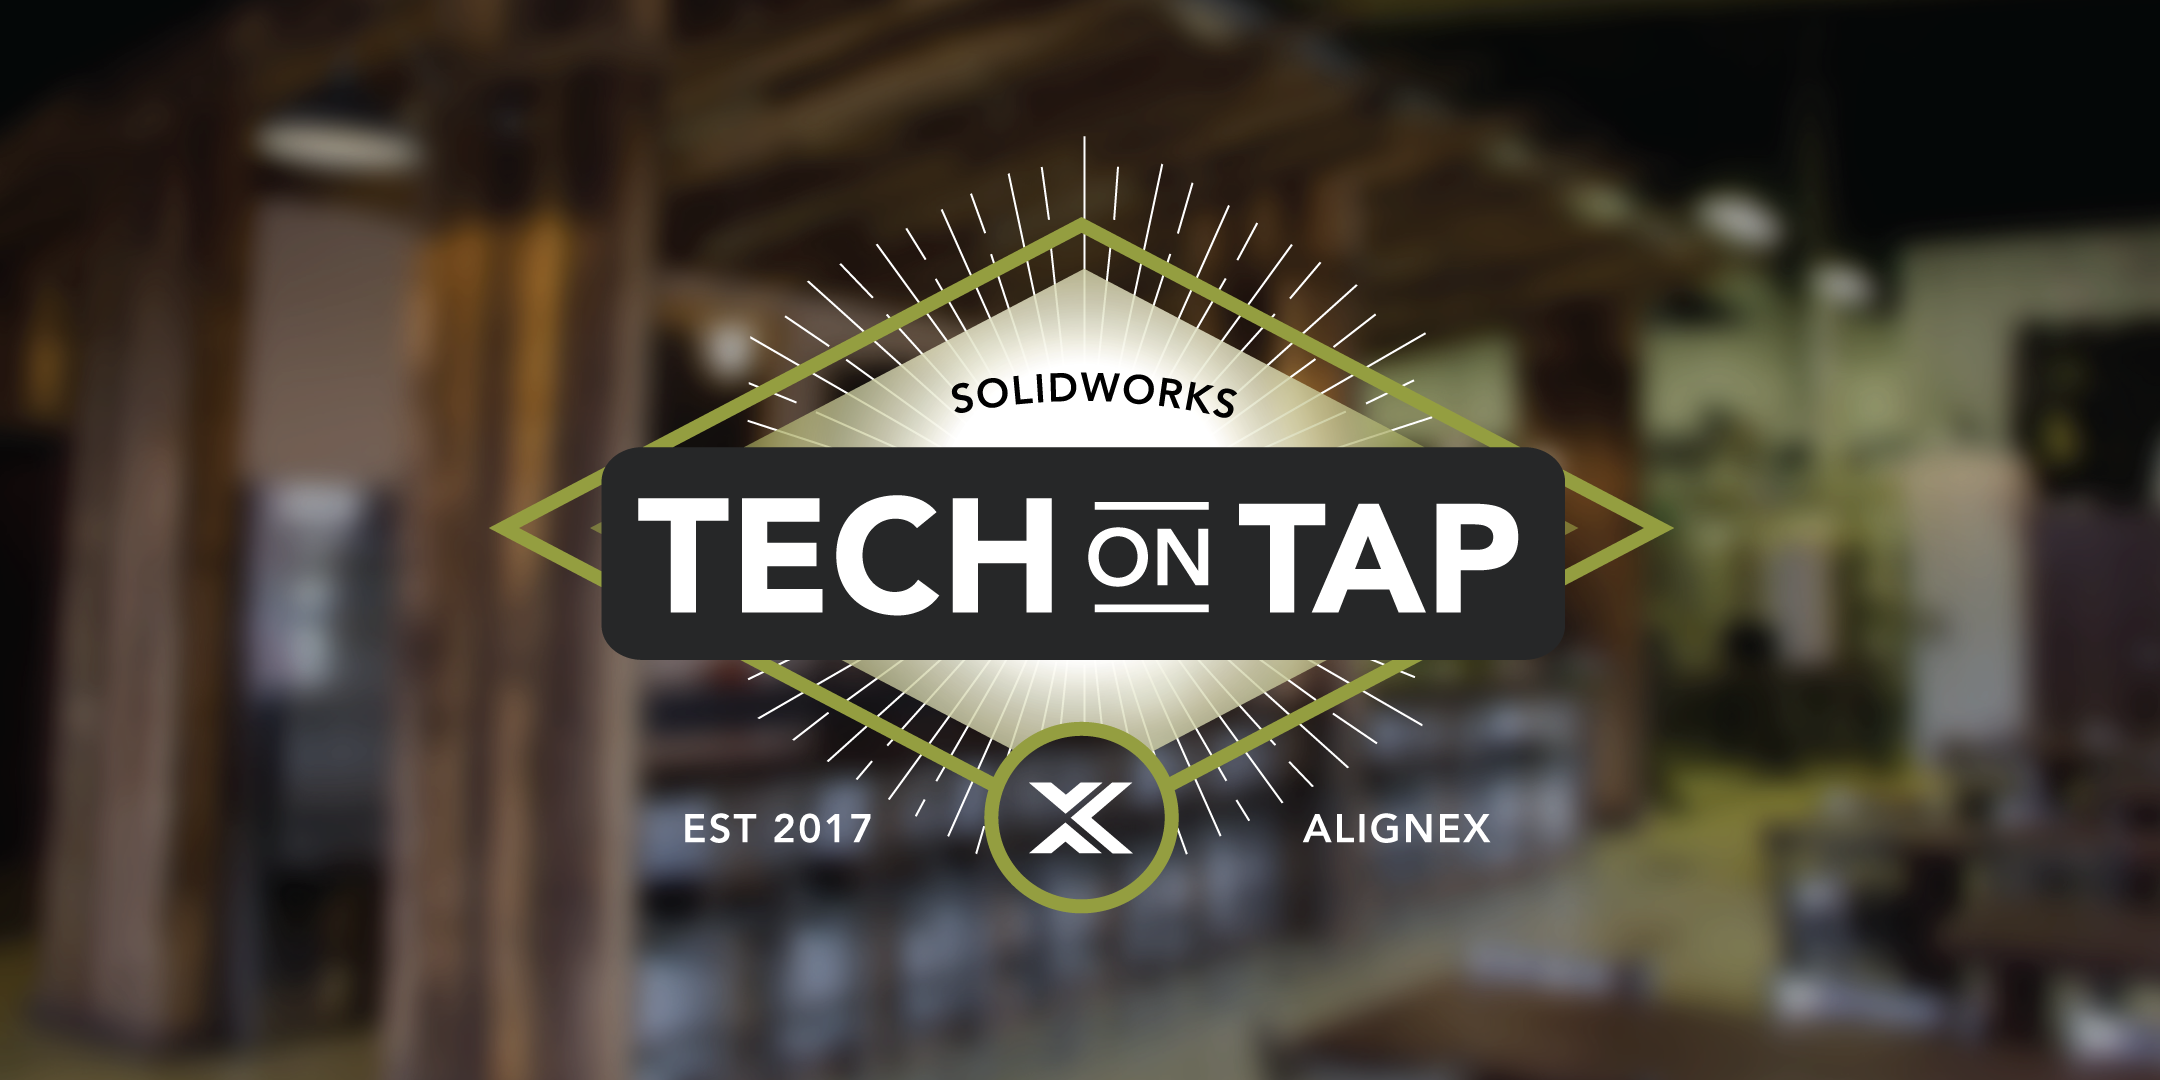 SOLIDWORKS Tech on Tap